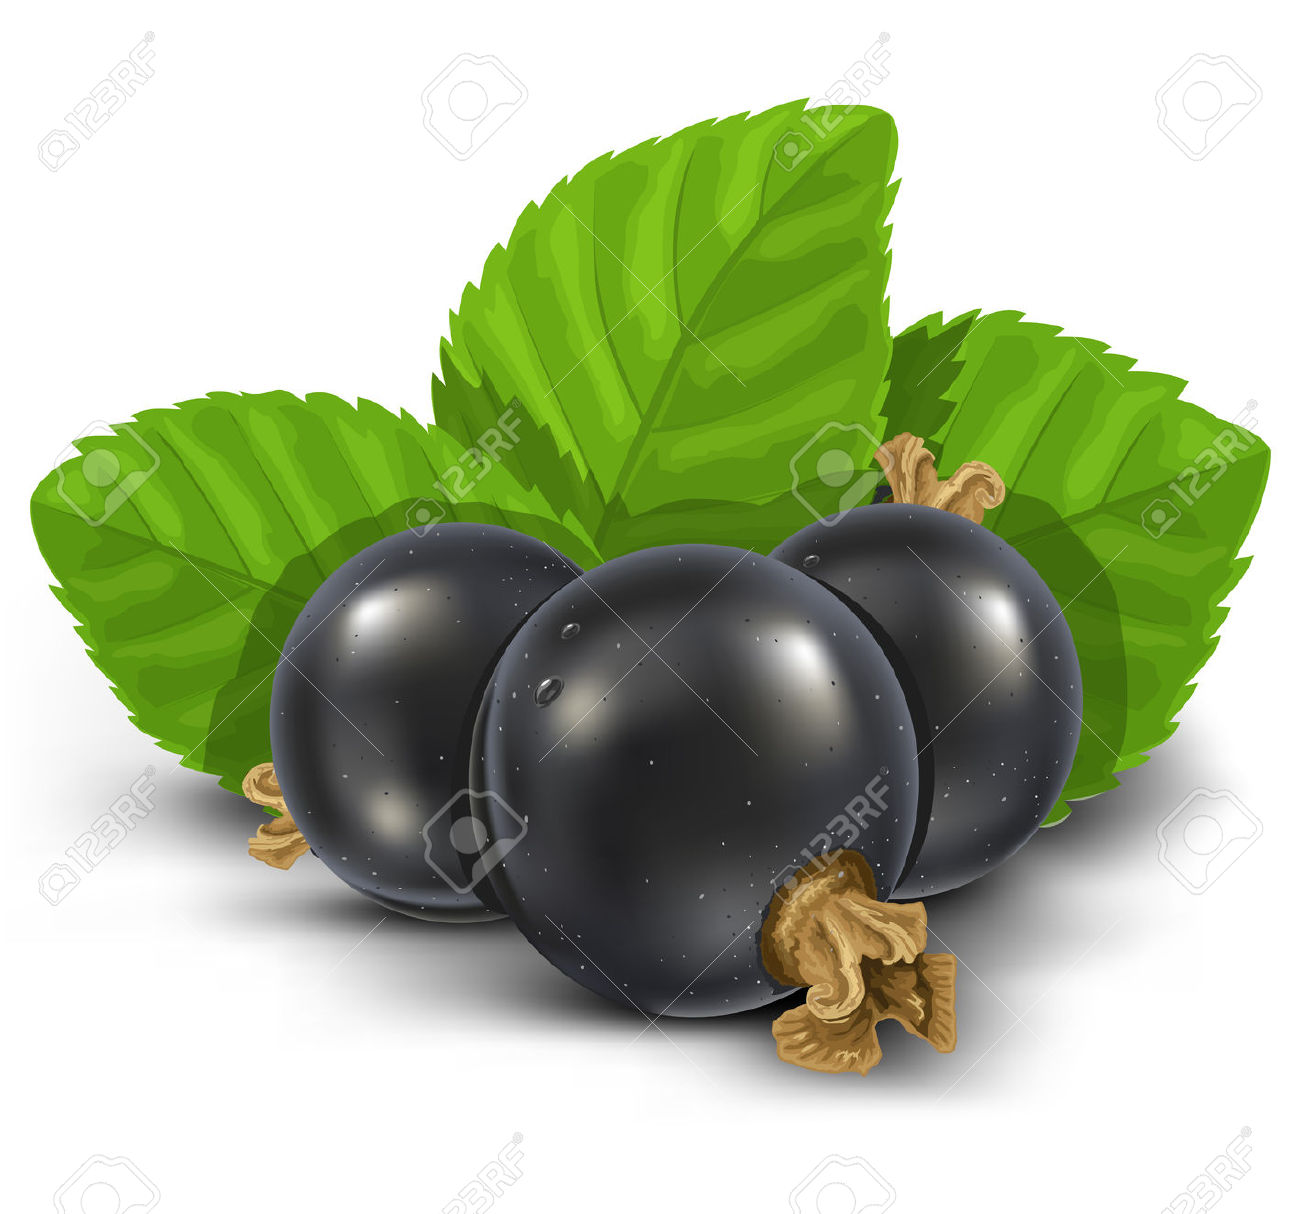 Black Currant Fruits With Green Leaves Vector Illustration Royalty.